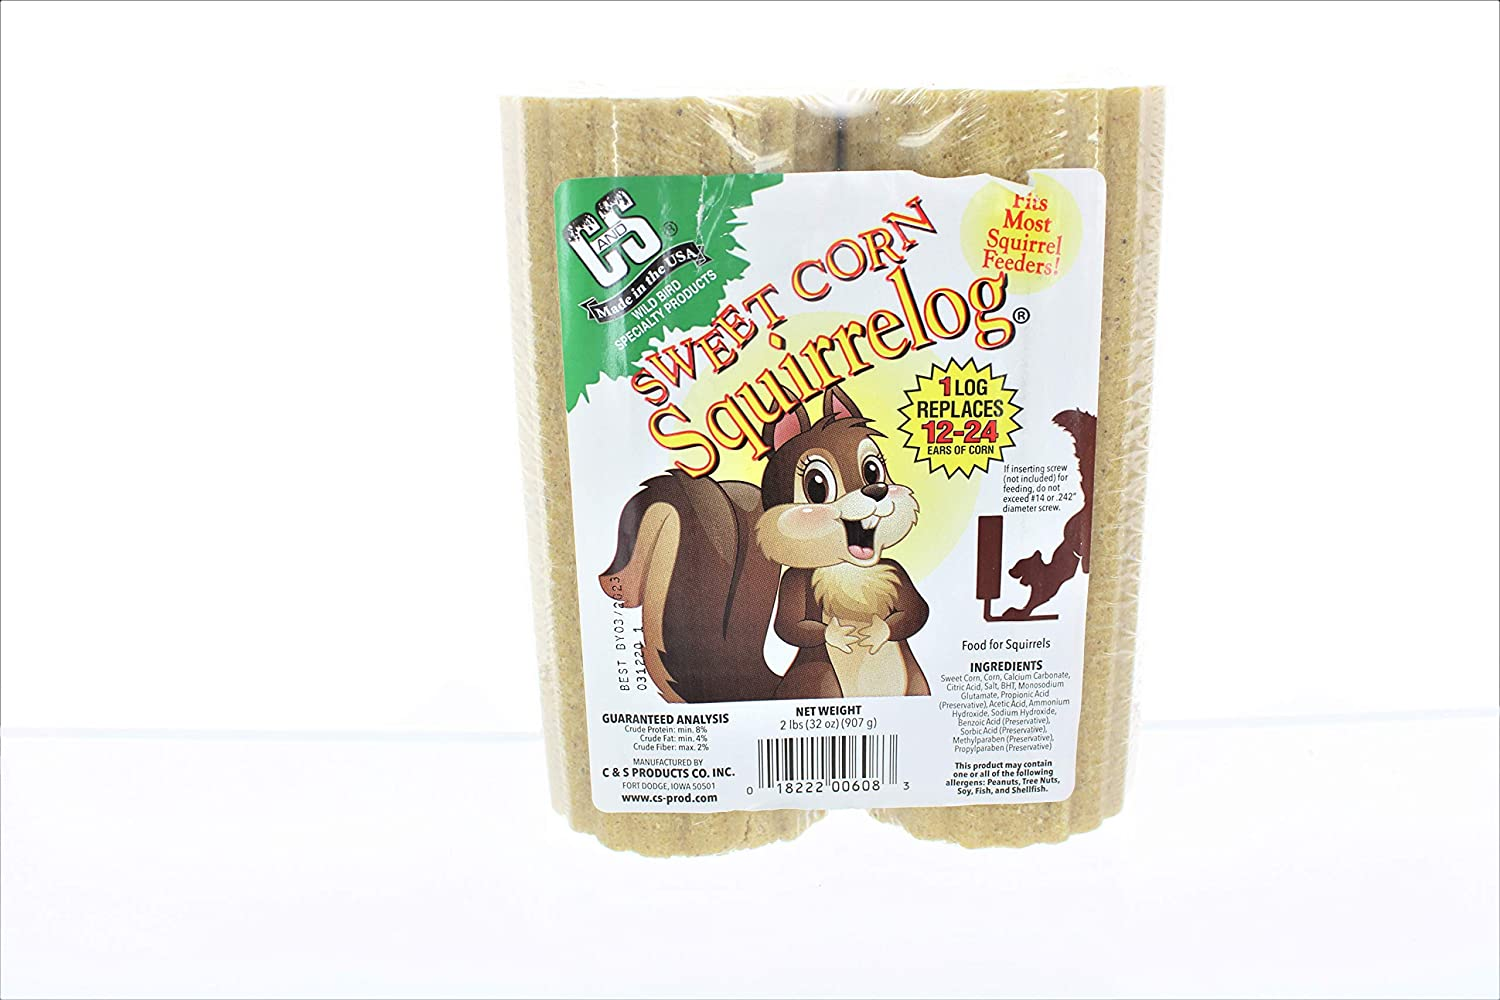 Sweet Corn Squirrelog Replacement Log, 1-pound pack of 2